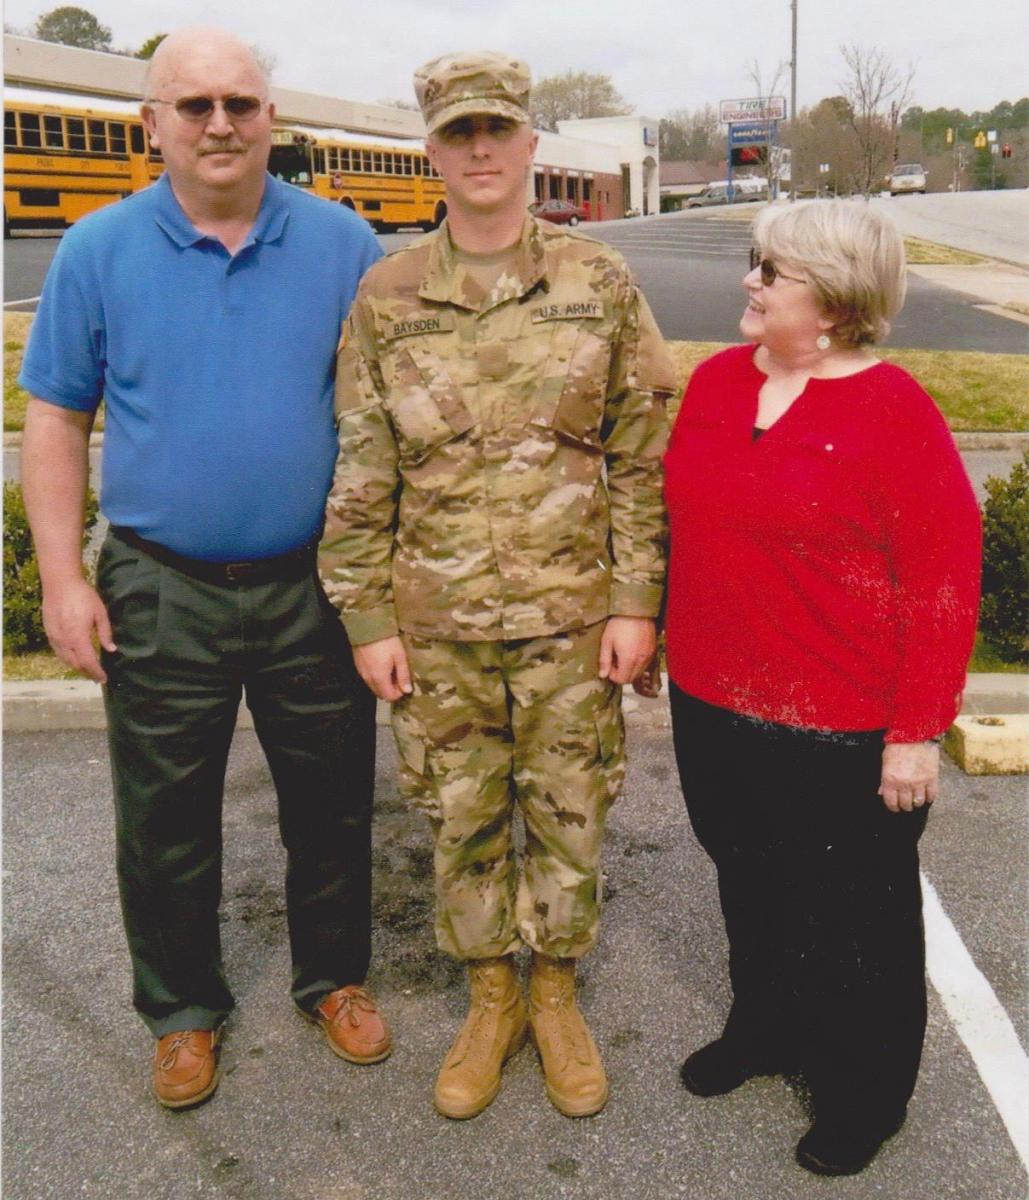 Ken Baysden had brain tumor surgery last May shortly after their son Carl's graduation from basic training at Fort Benning, Georgia (with Ginny above). Recently cleared of his tumor, Ken proudly showed-off their airman son around town when Carl returned home to Morehead City, NC, this Christmas.